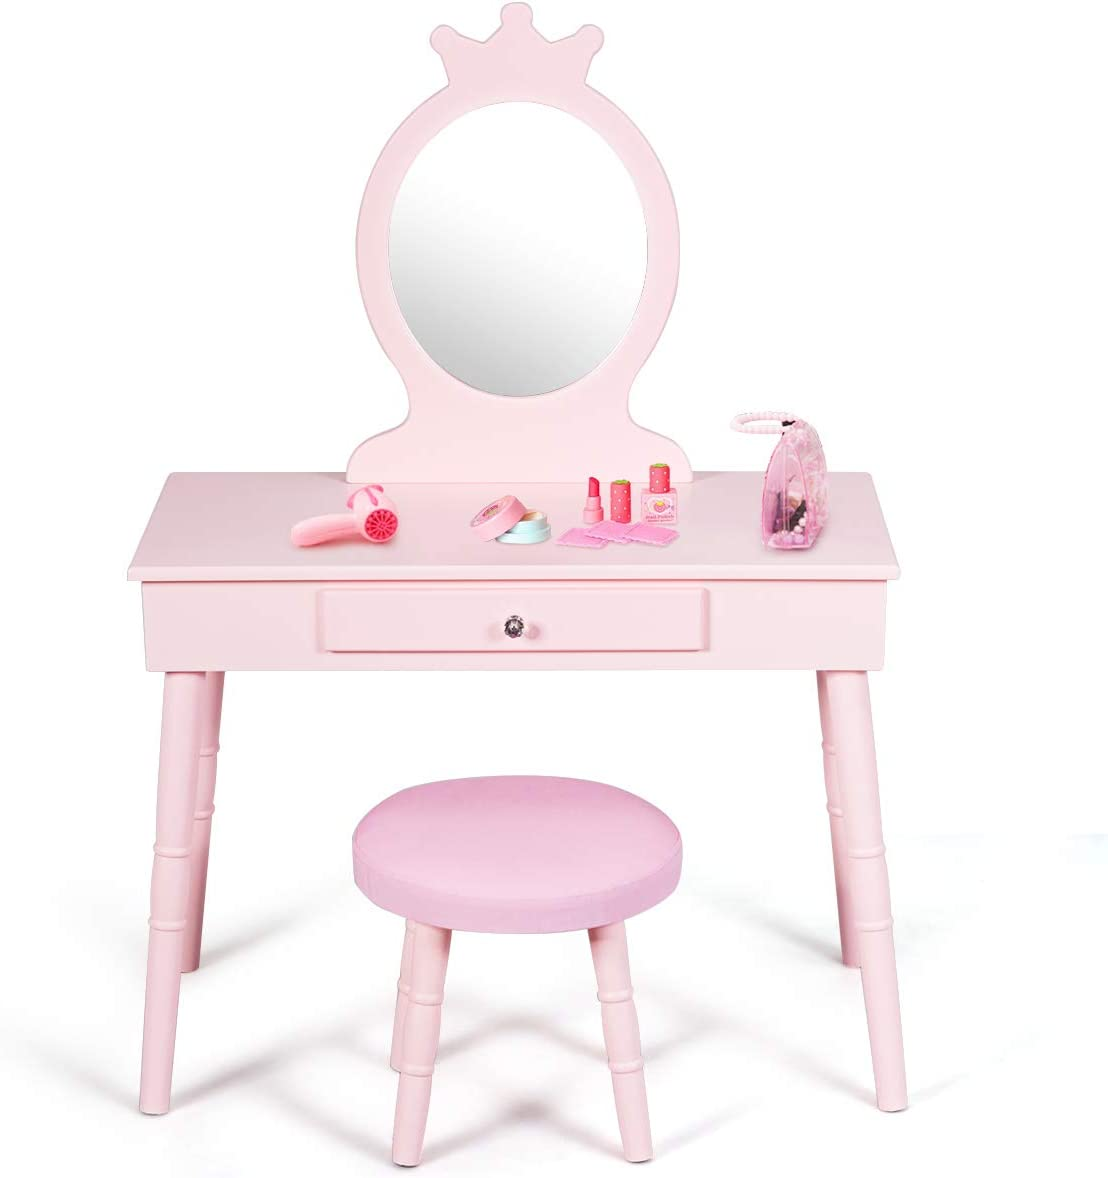 HONEY JOY Kids Vanity Table Set, Princess Beauty Dressing Wooden Table and Chair Vanity Set, Little Girls Pretend Makeup Play Set with Crown Mirror & Cushioned Stool, Children's Room Furniture (Pink)